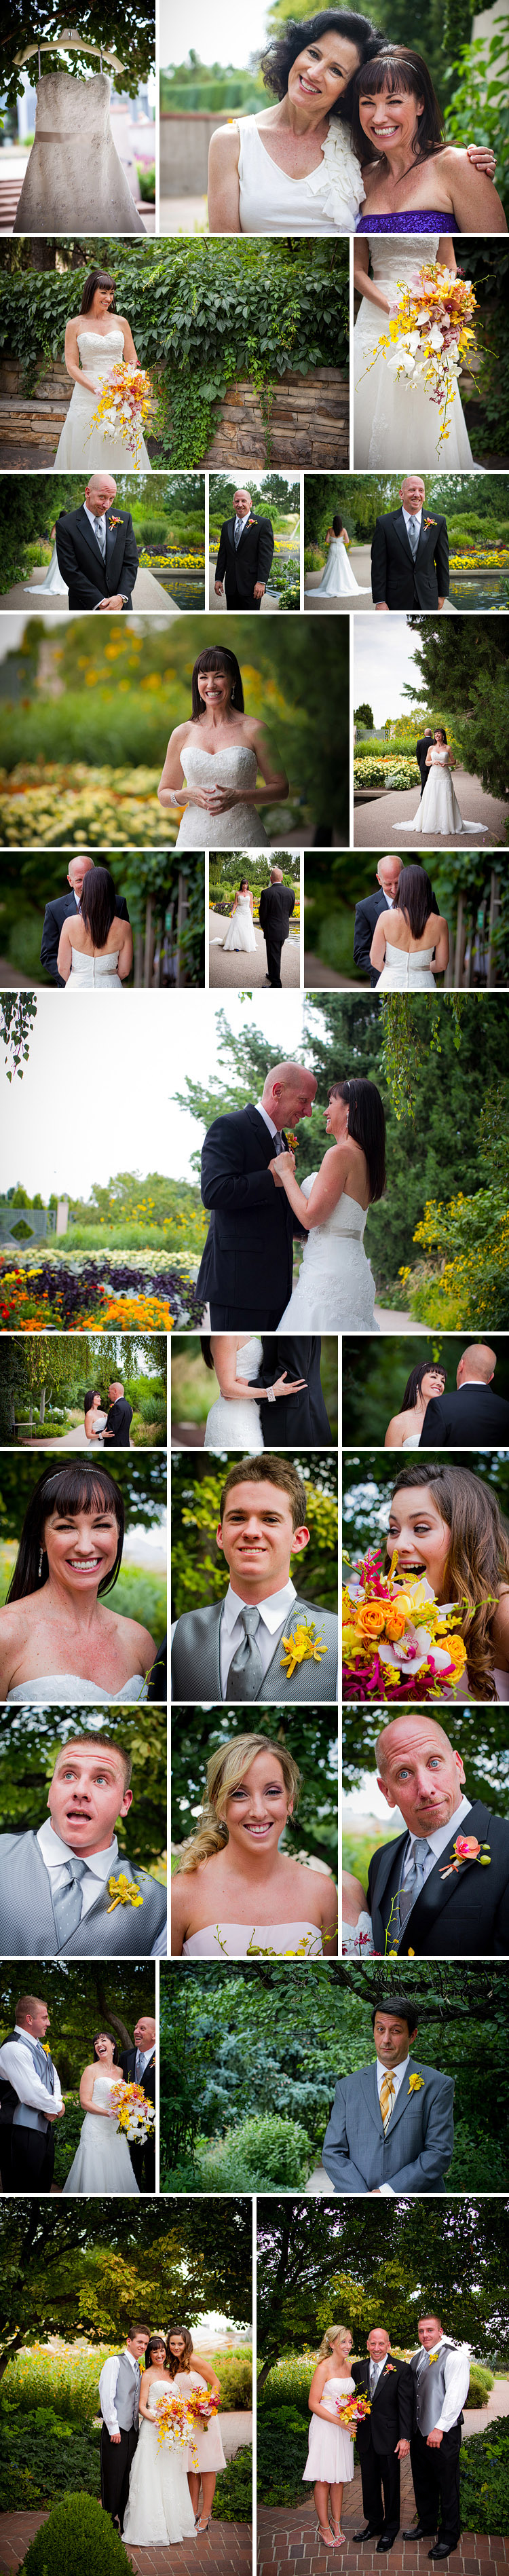 denver-botanical-gardens-wedding-01